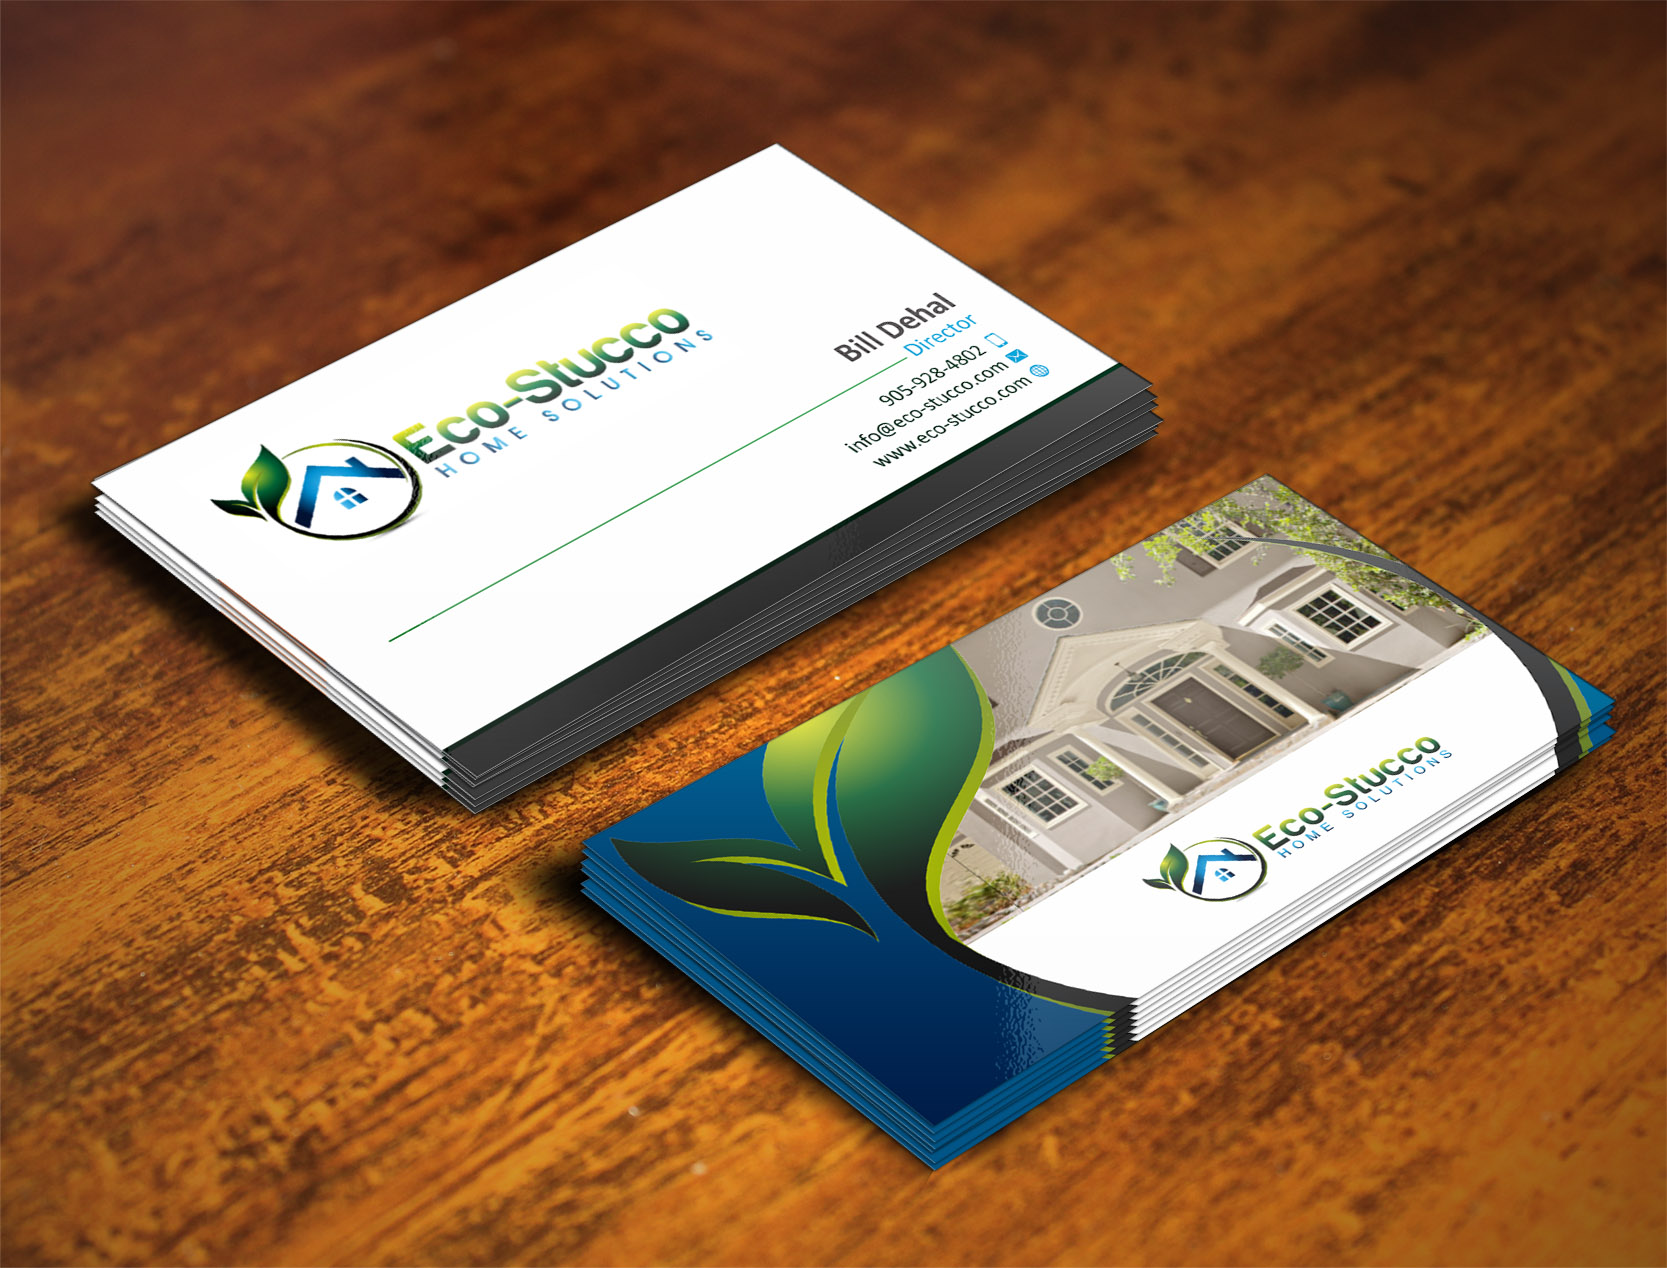 Business card design contests inspiring business card design for business card design by muhammad aslam entry no 41 in the business card design magicingreecefo Images